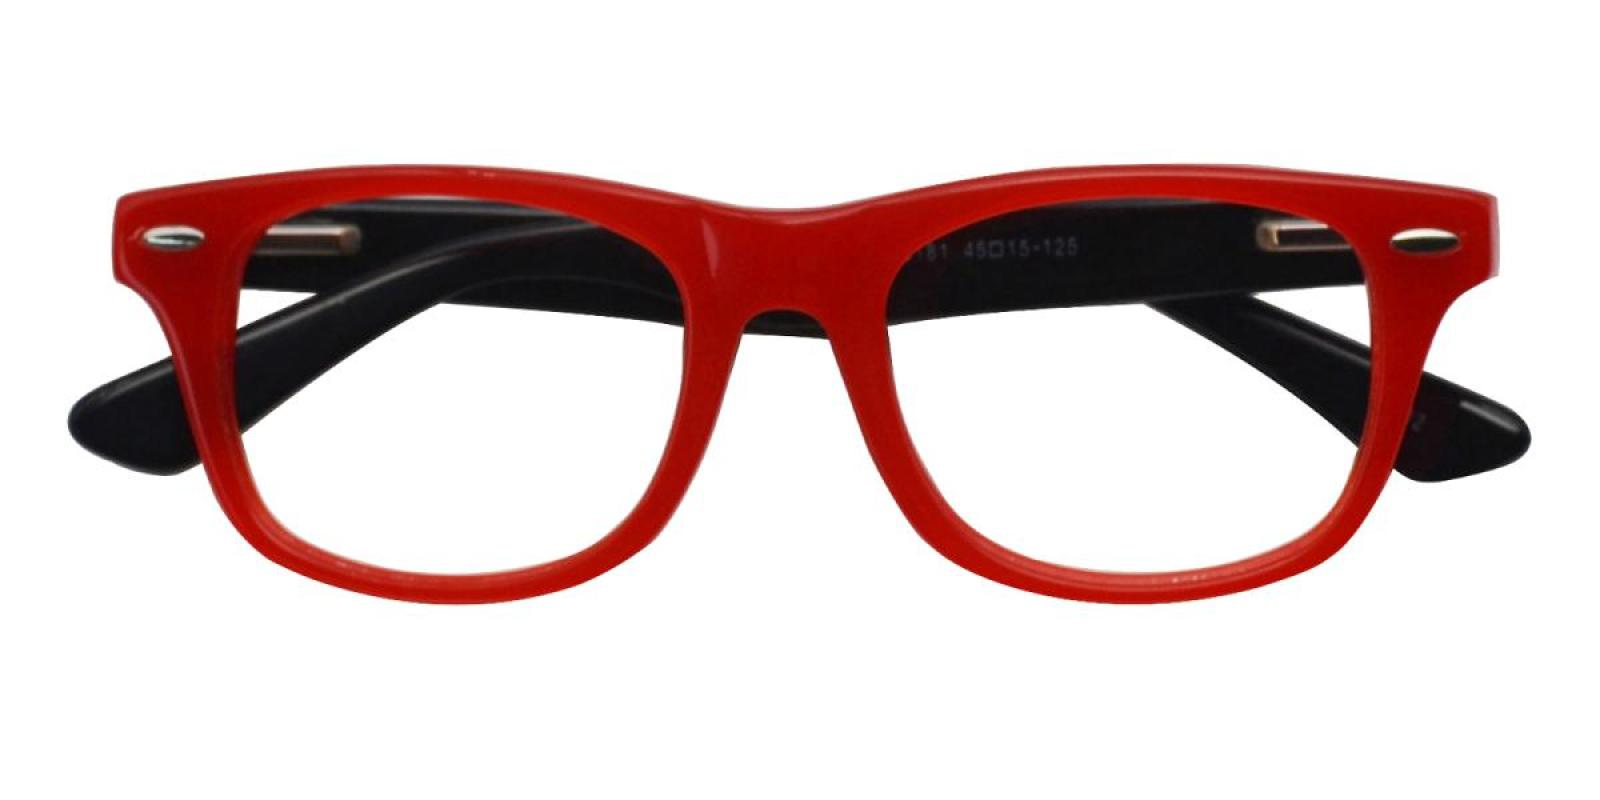 Bristol-Red-Square-Acetate-Eyeglasses-detail